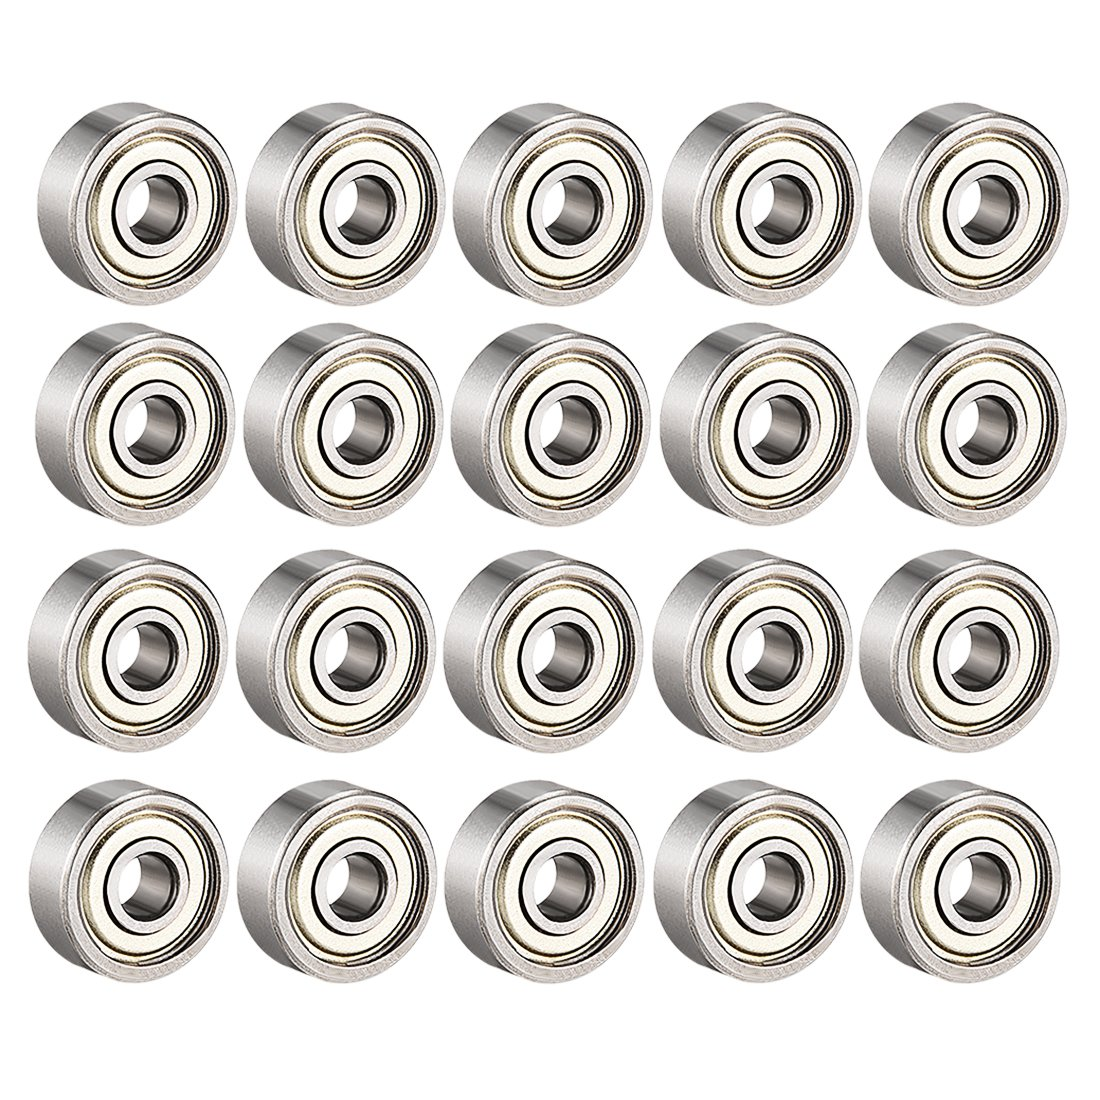 sourcing map 623ZZ Ball Bearing 3mm x 10mm x 4mm Double Shielded 623-2Z 80023 Deep Groove Bearings, Carbon Steel (Pack of 4)